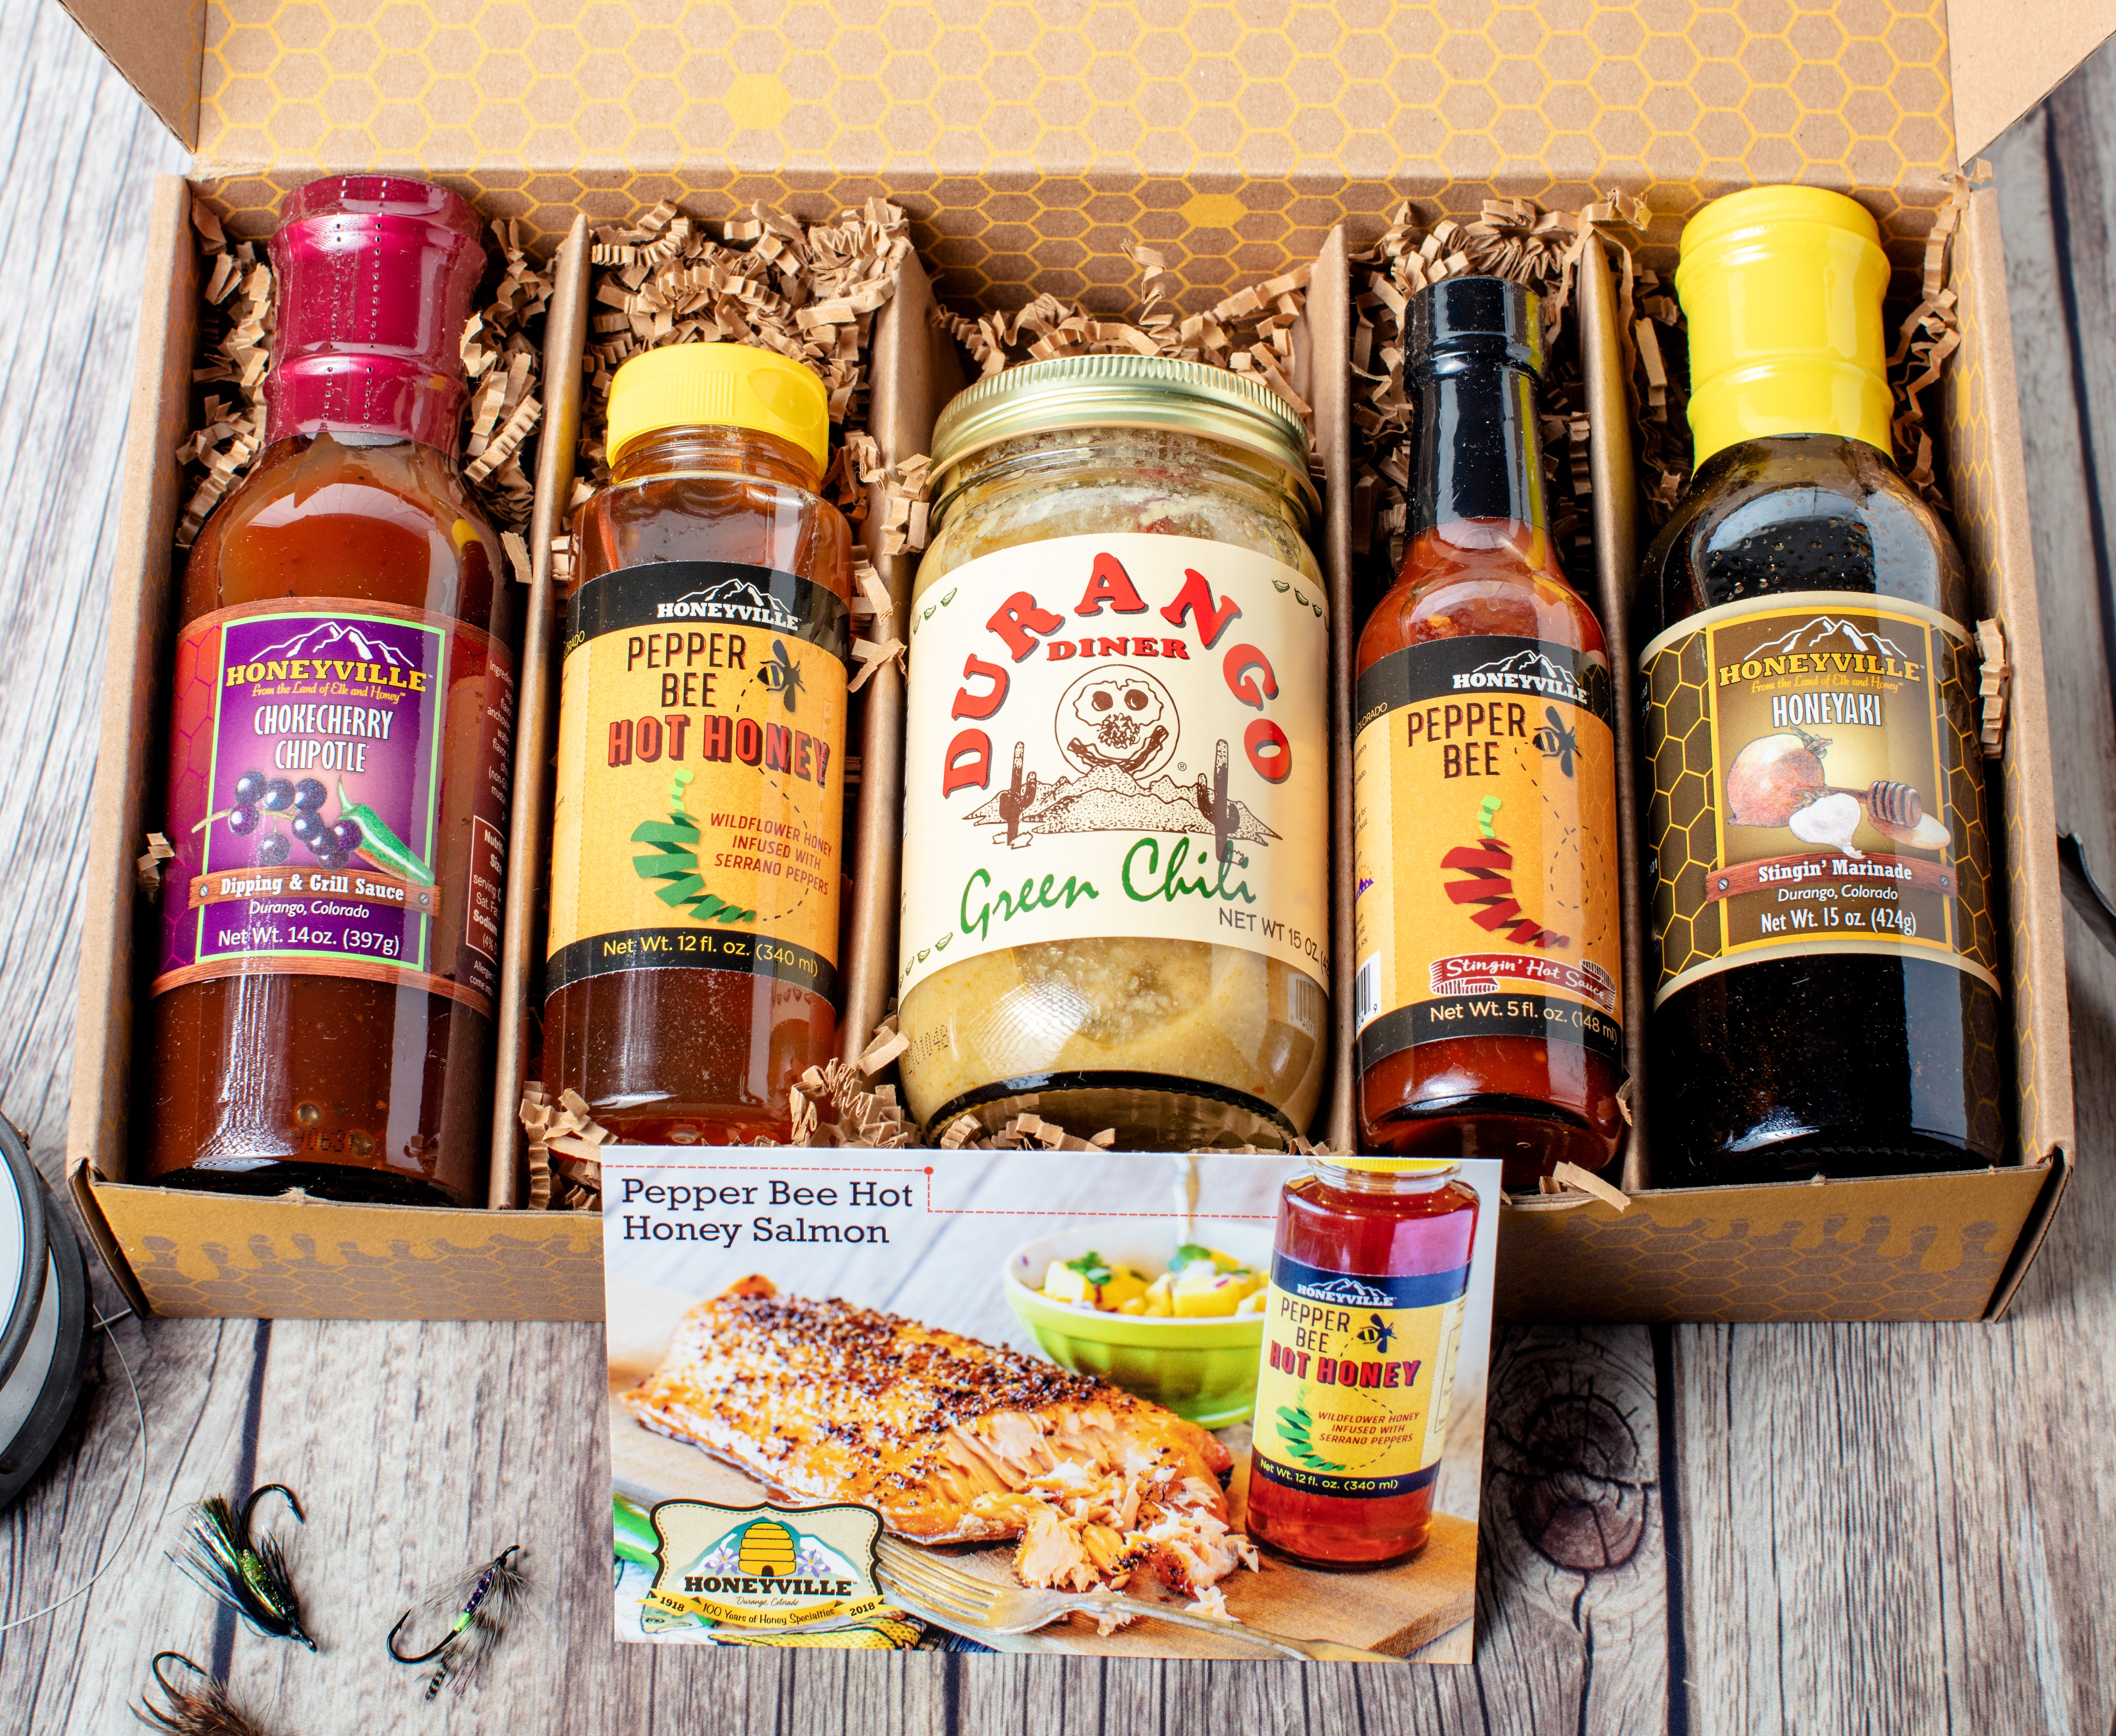 FATHER'S DAY BOX - Free Ground Shipping